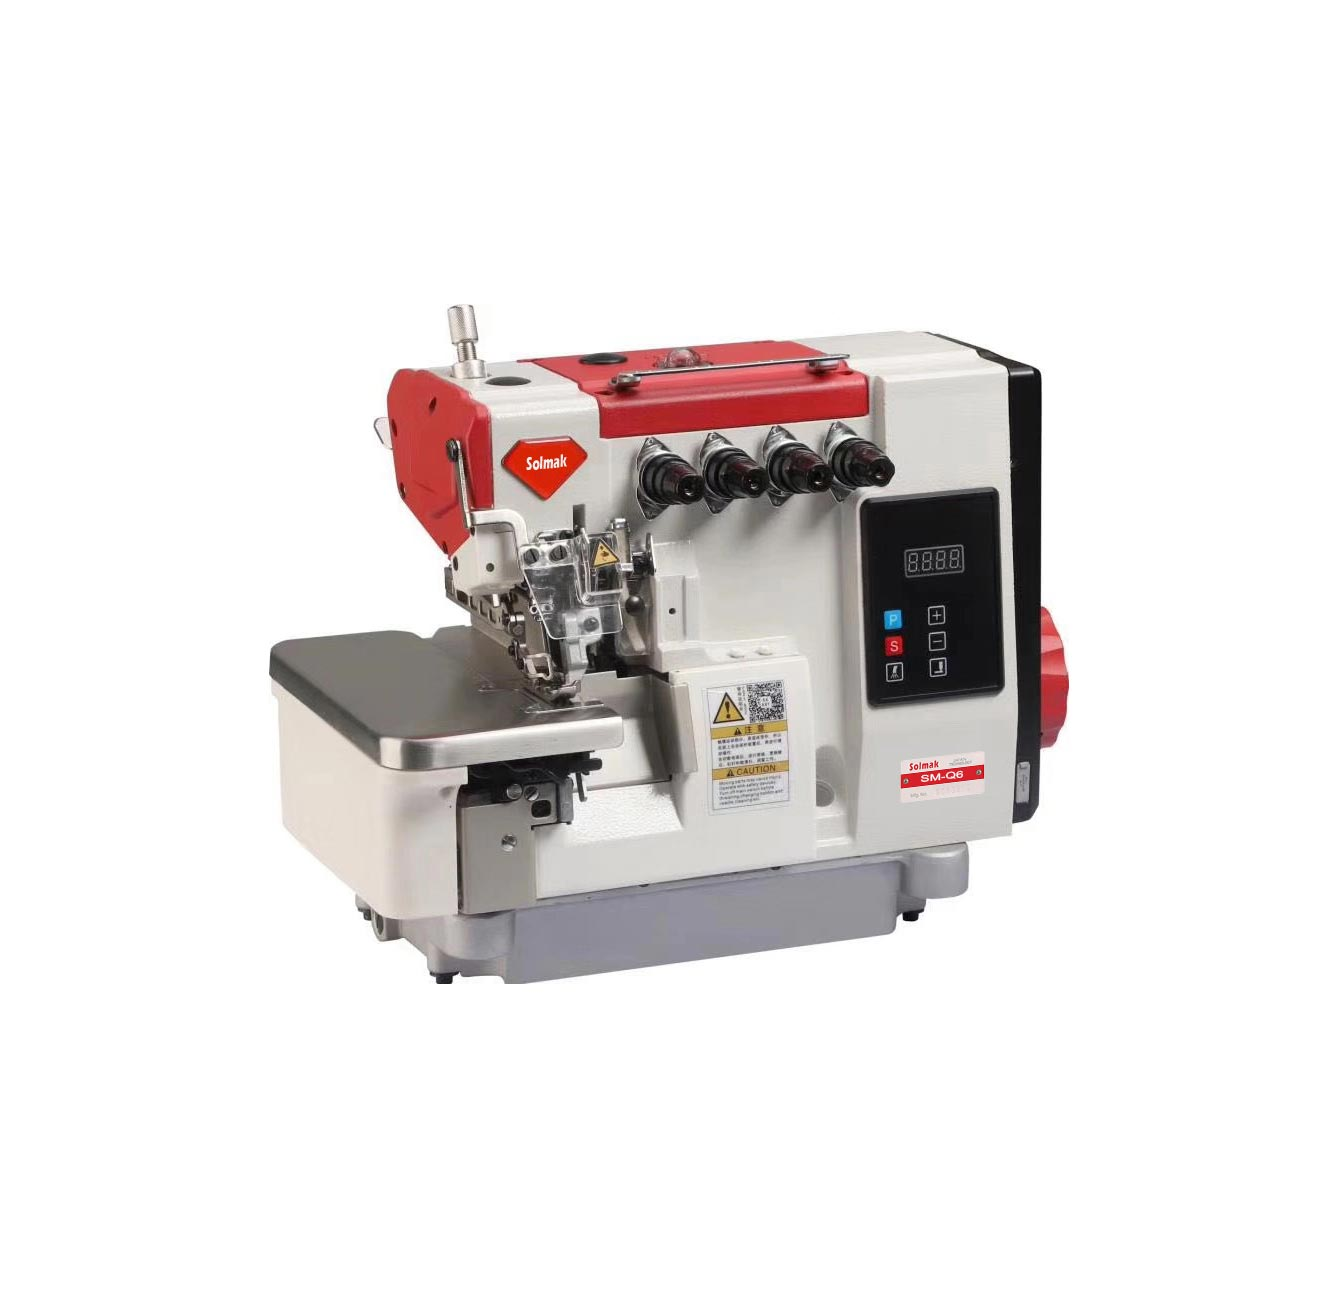 SUPER HIGH SPEED OVERLOCK SEWING MACHINE SM-985-4AT